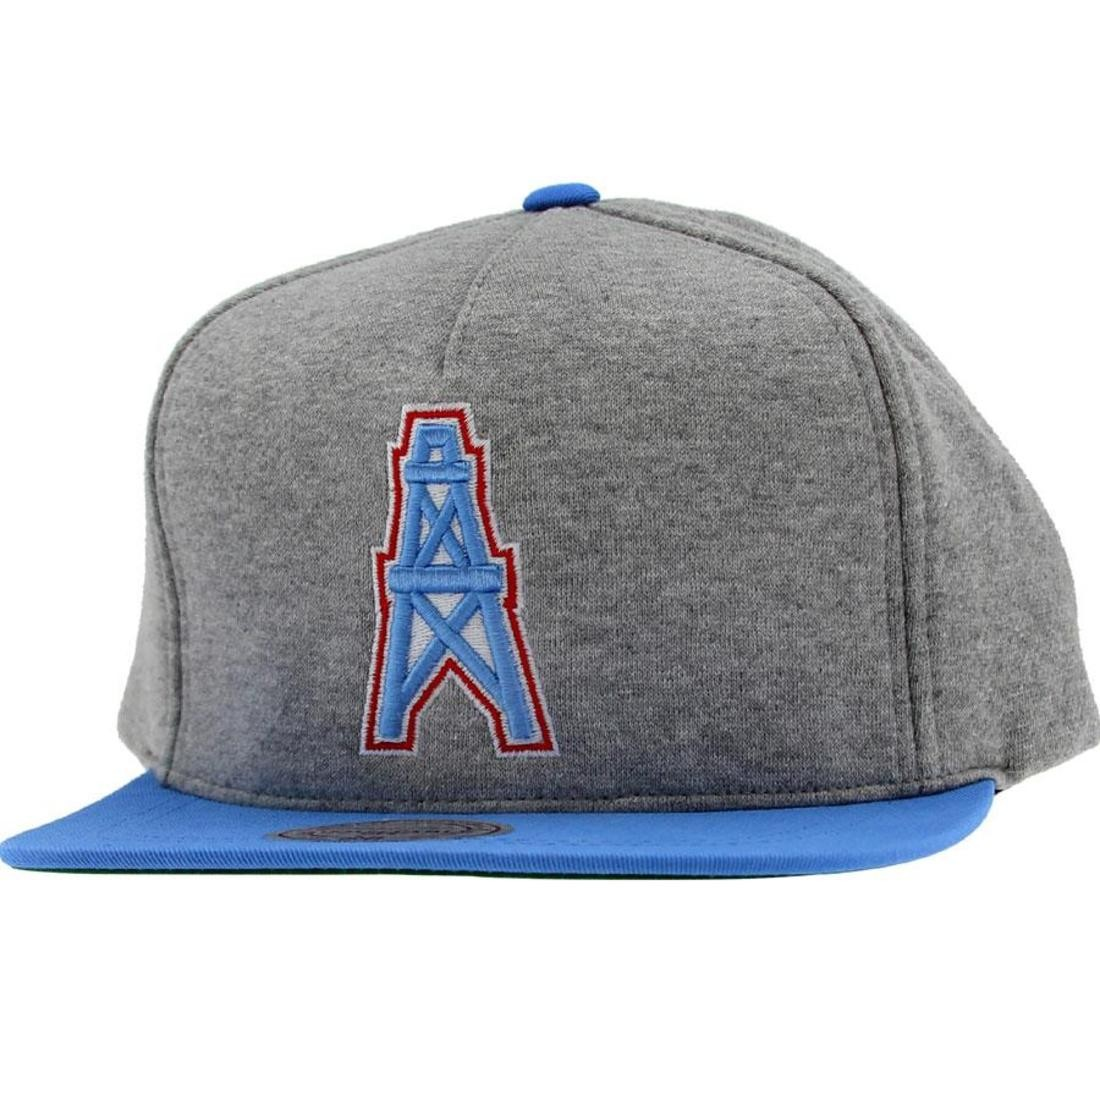 reputable site 73544 86ba2 Mitchell And Ness Houston Oilers NFL Heather Fleece 2 Toned Snapback Cap  (grey / blue)